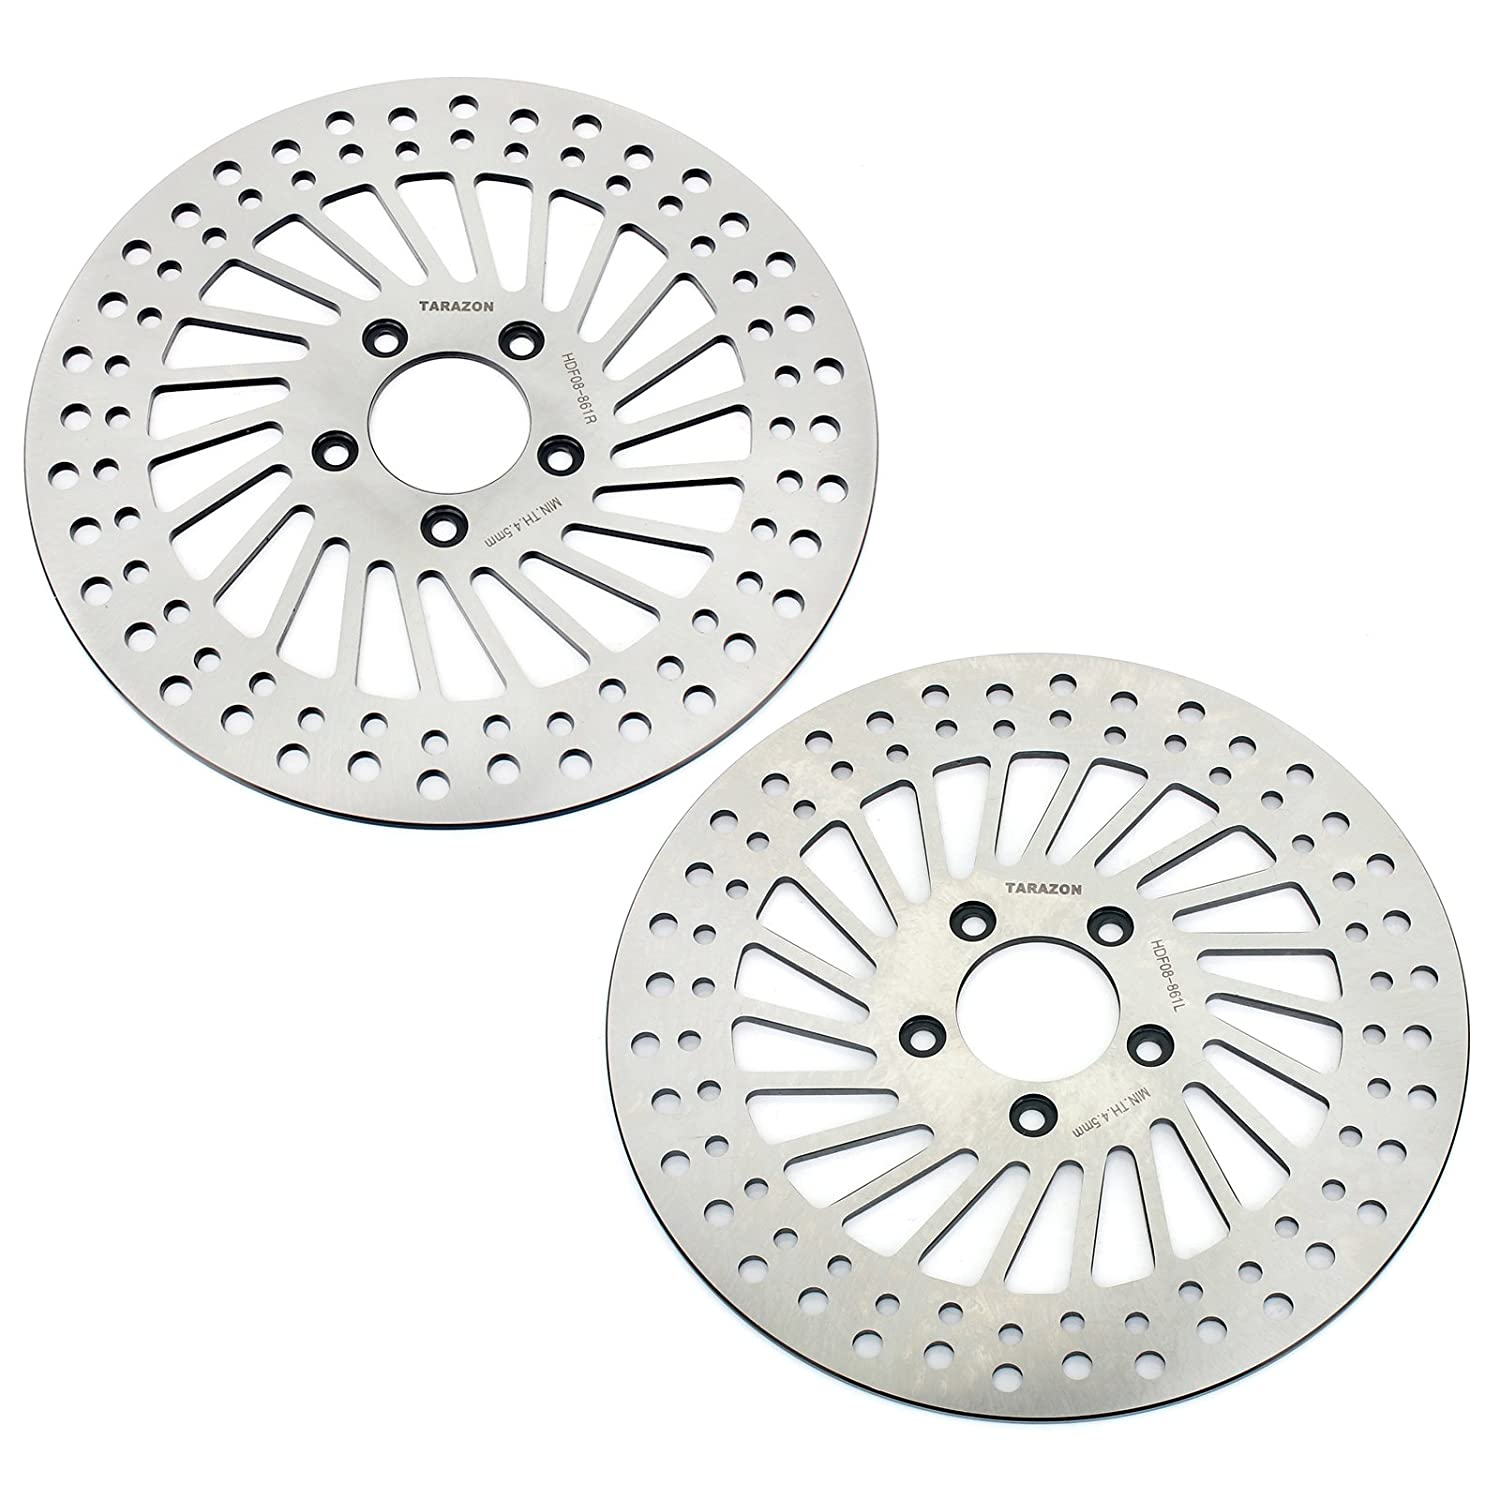 TARAZON 1 Pair Front Brake Rotors for Harley Tour Touring Bike Electra Glide Classic Standard Road Glide Custom Classic Road Glide Street Glide 2008-2013 Thai-Racing Co. Ltd